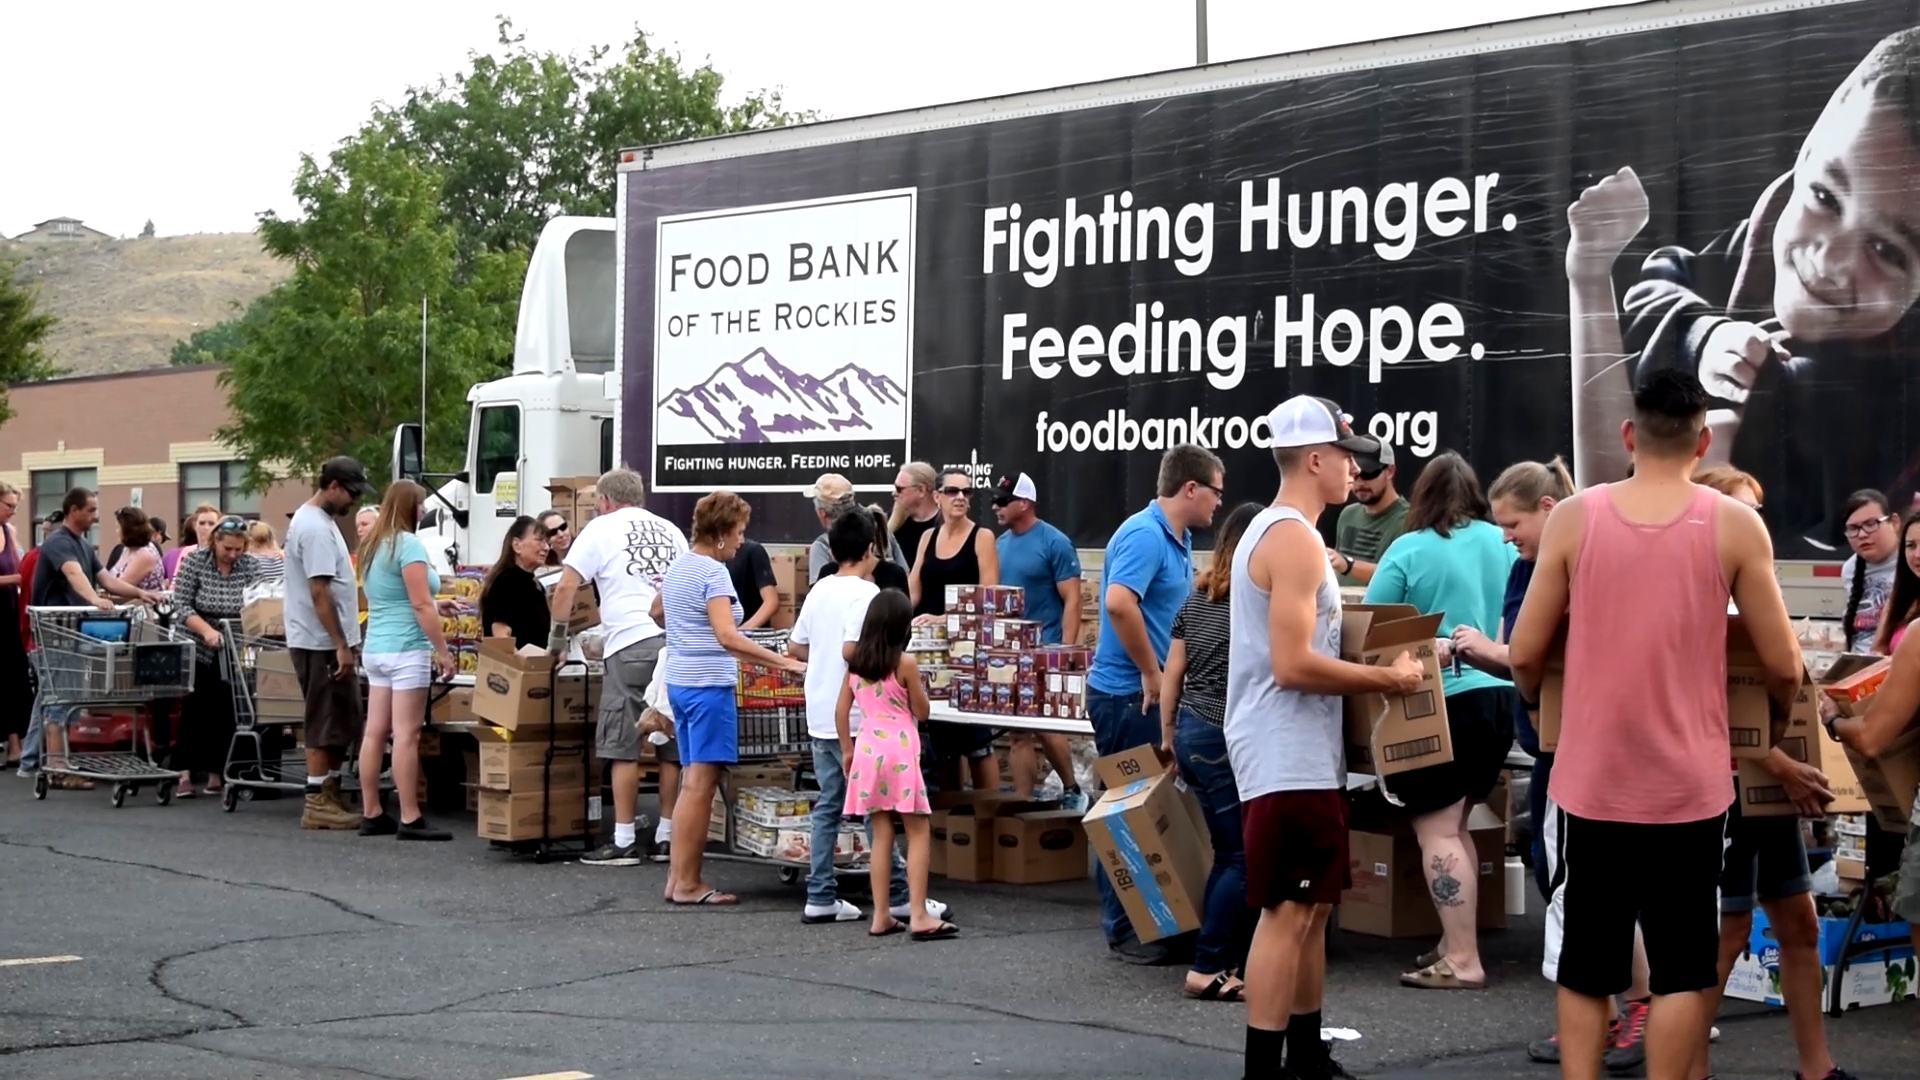 Food Distribution & Outreach